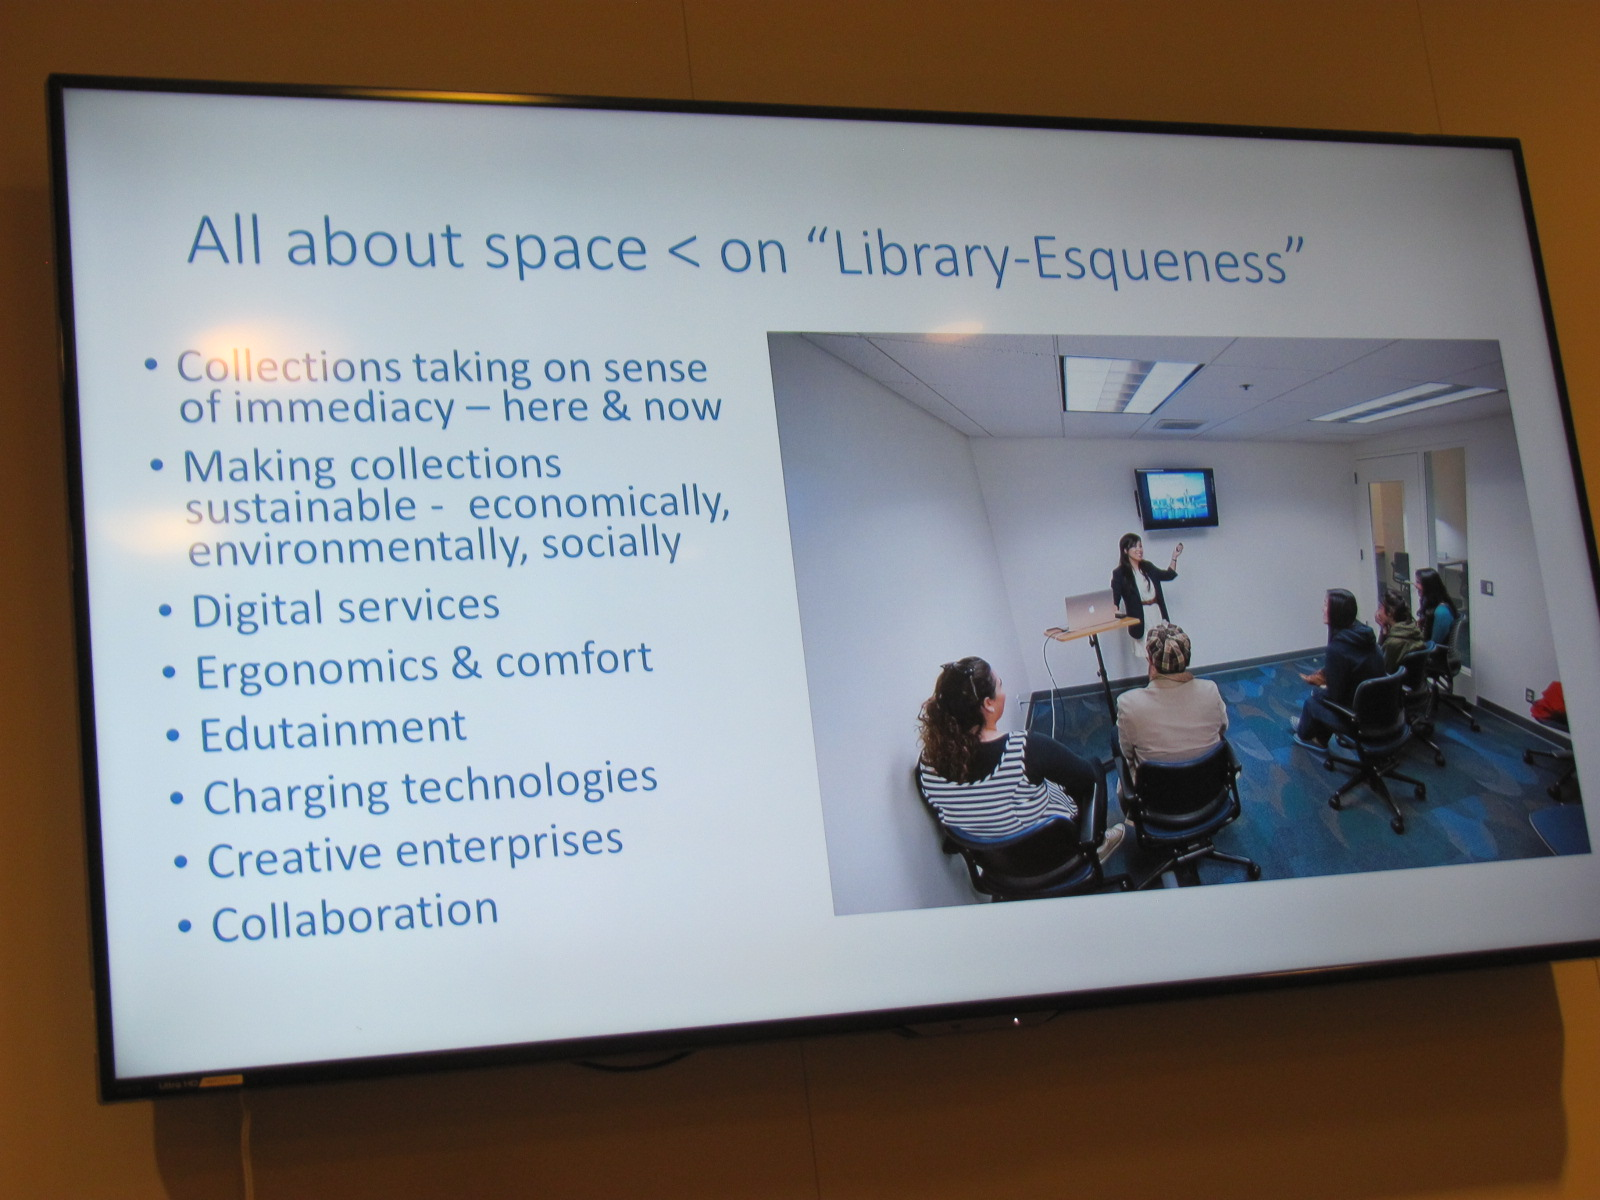 Reimagining the Library: Relationships Between Library Collections